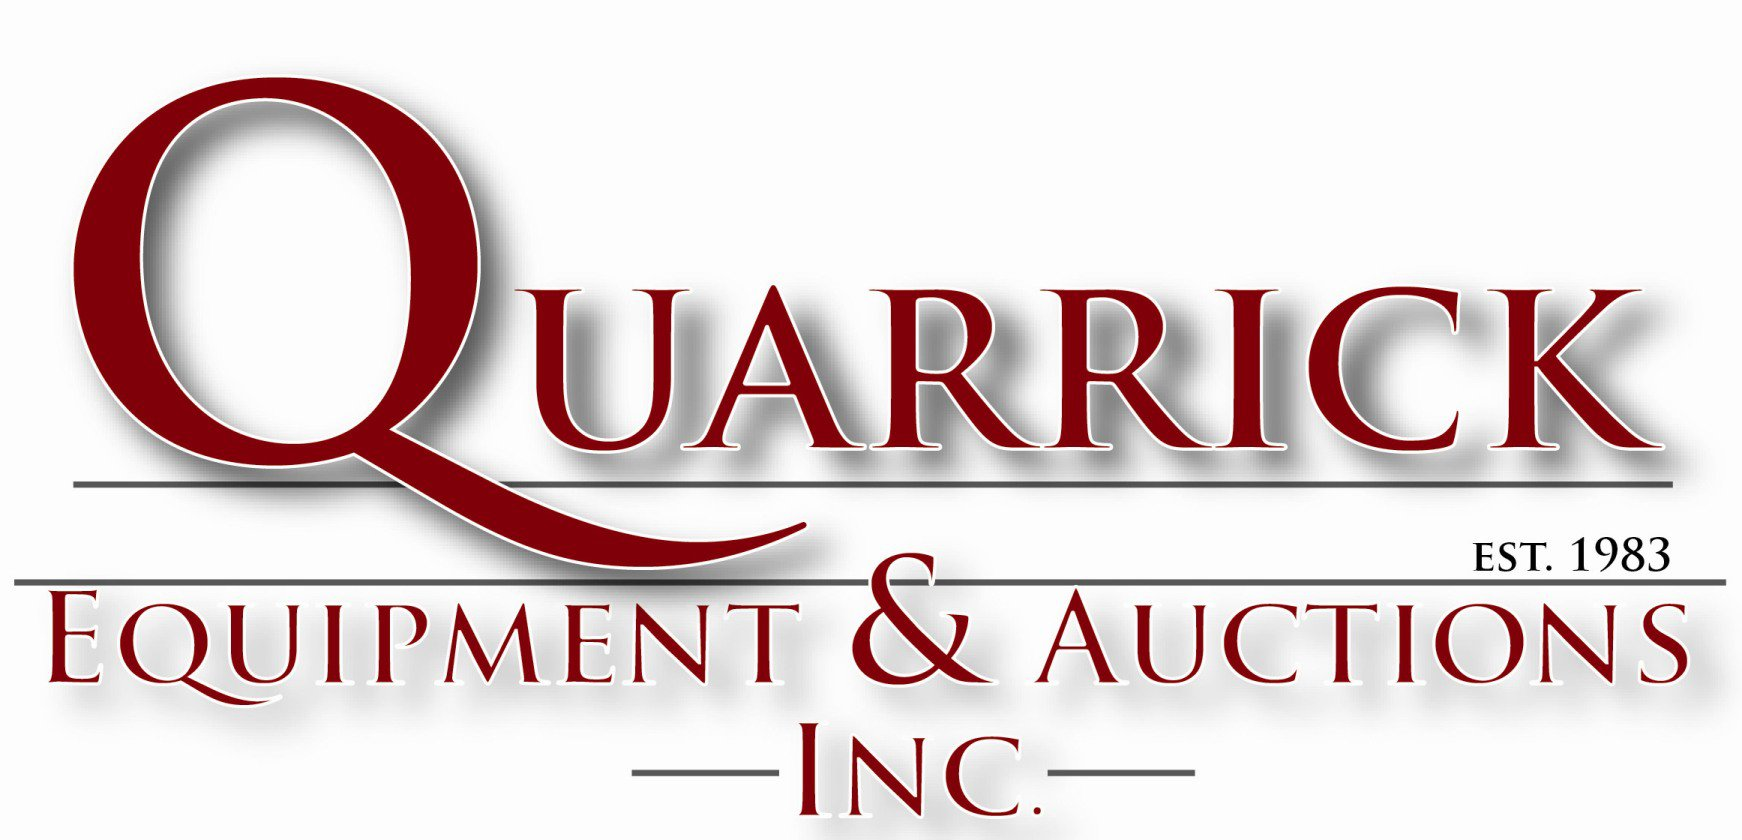 Quarrick Equipment & Auctions Inc